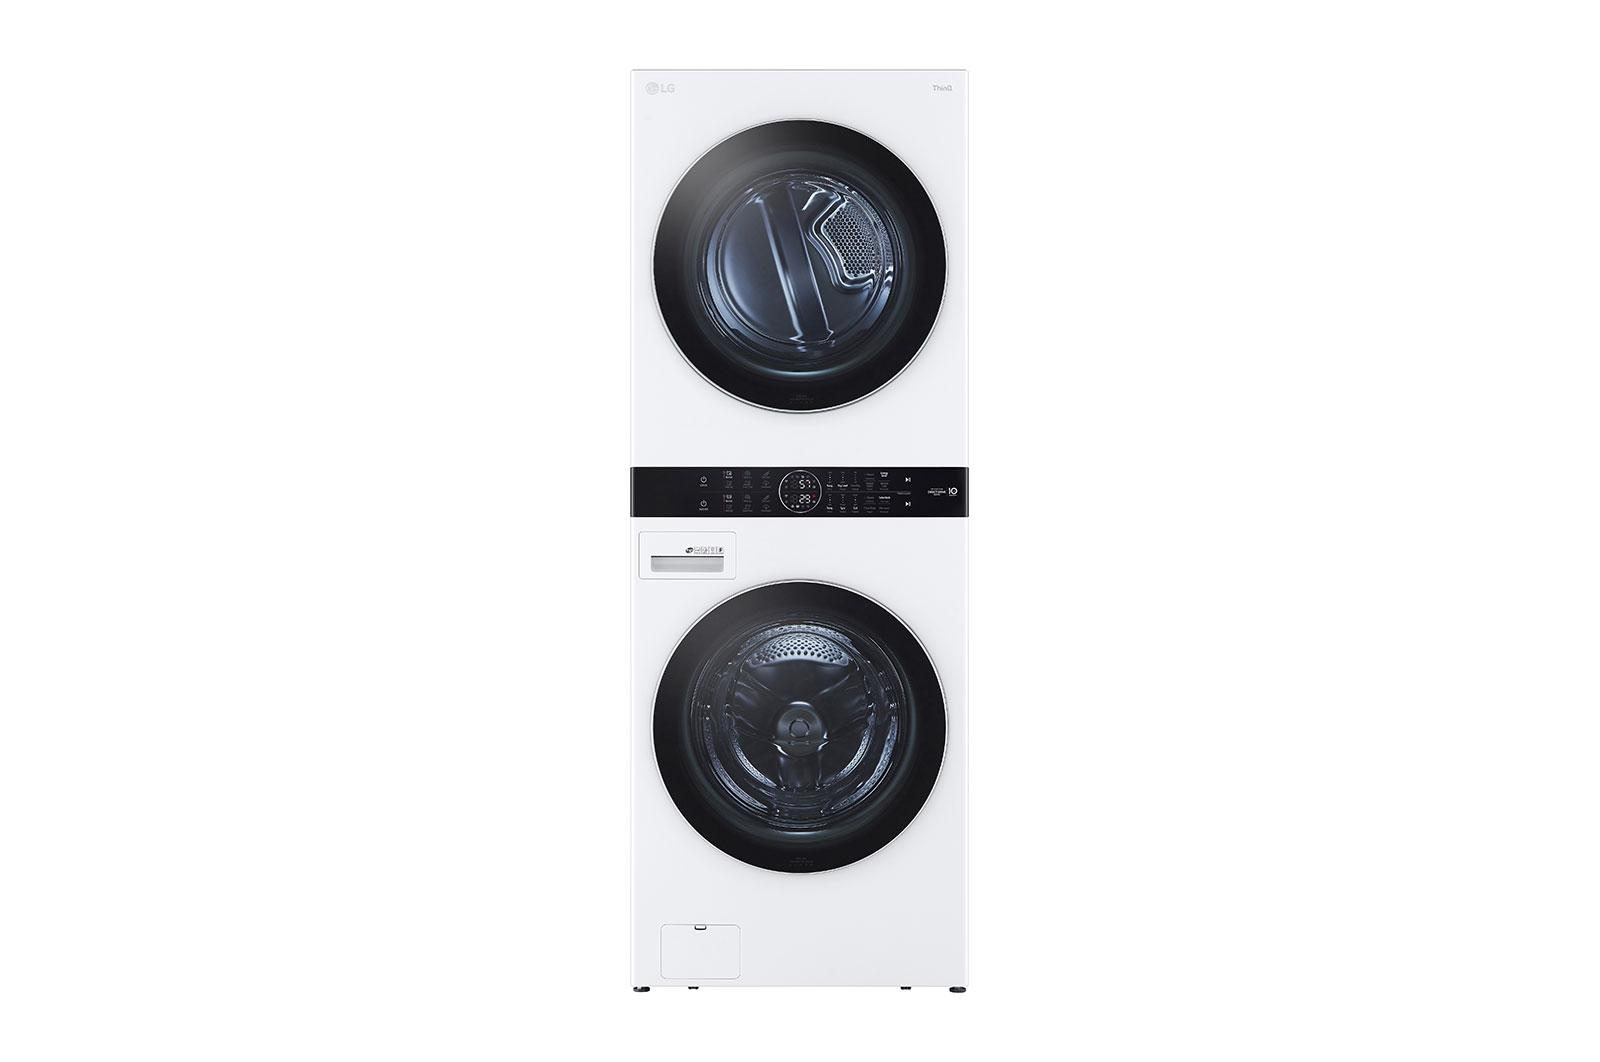 LG AppliancesSingle Unit Front Load Lg Washtower™ With Center Control™ 4.5 Cu. Ft. Washer And 7.4 Cu. Ft. Electric Dryer